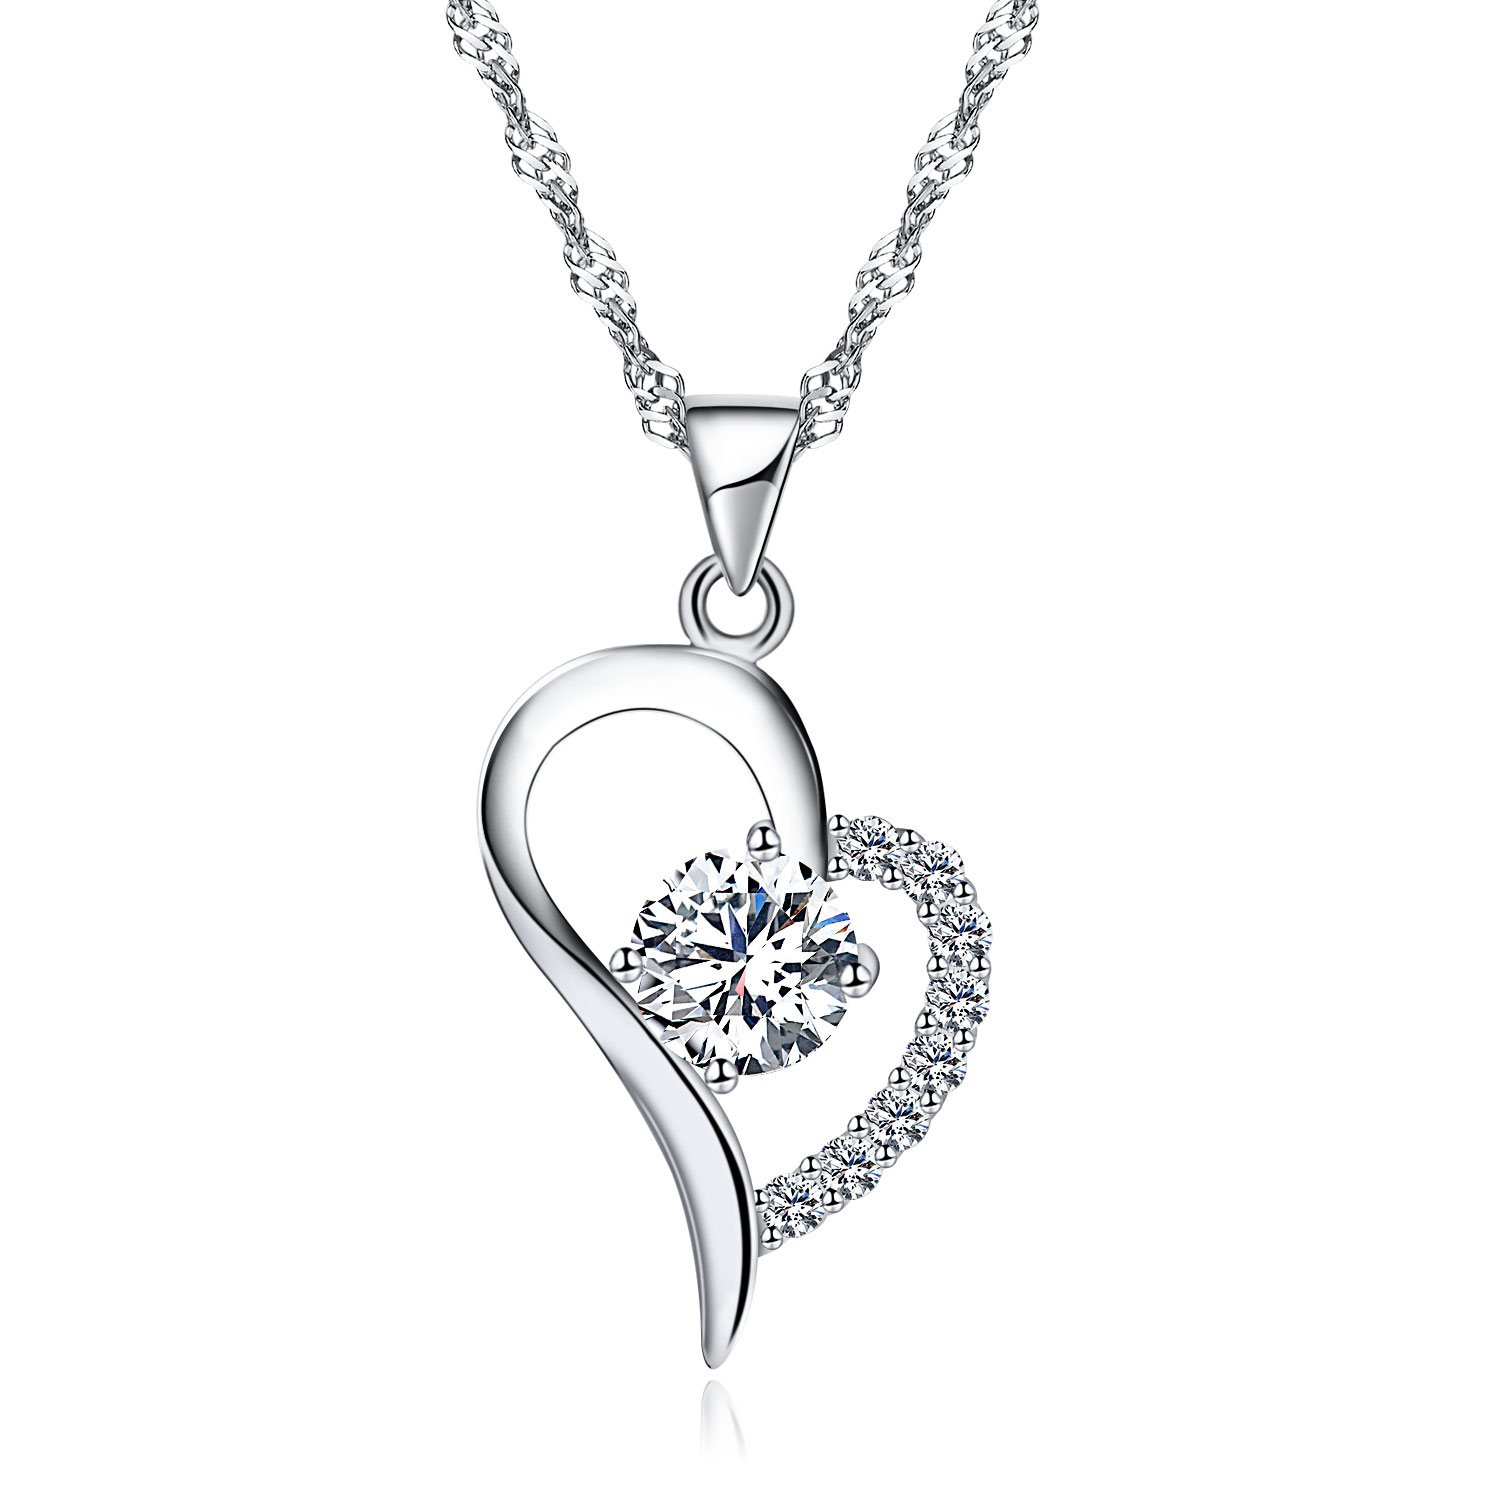 Wonvin Womans Necklaces Women s 925 Silver Cubic Zirconia Crystal